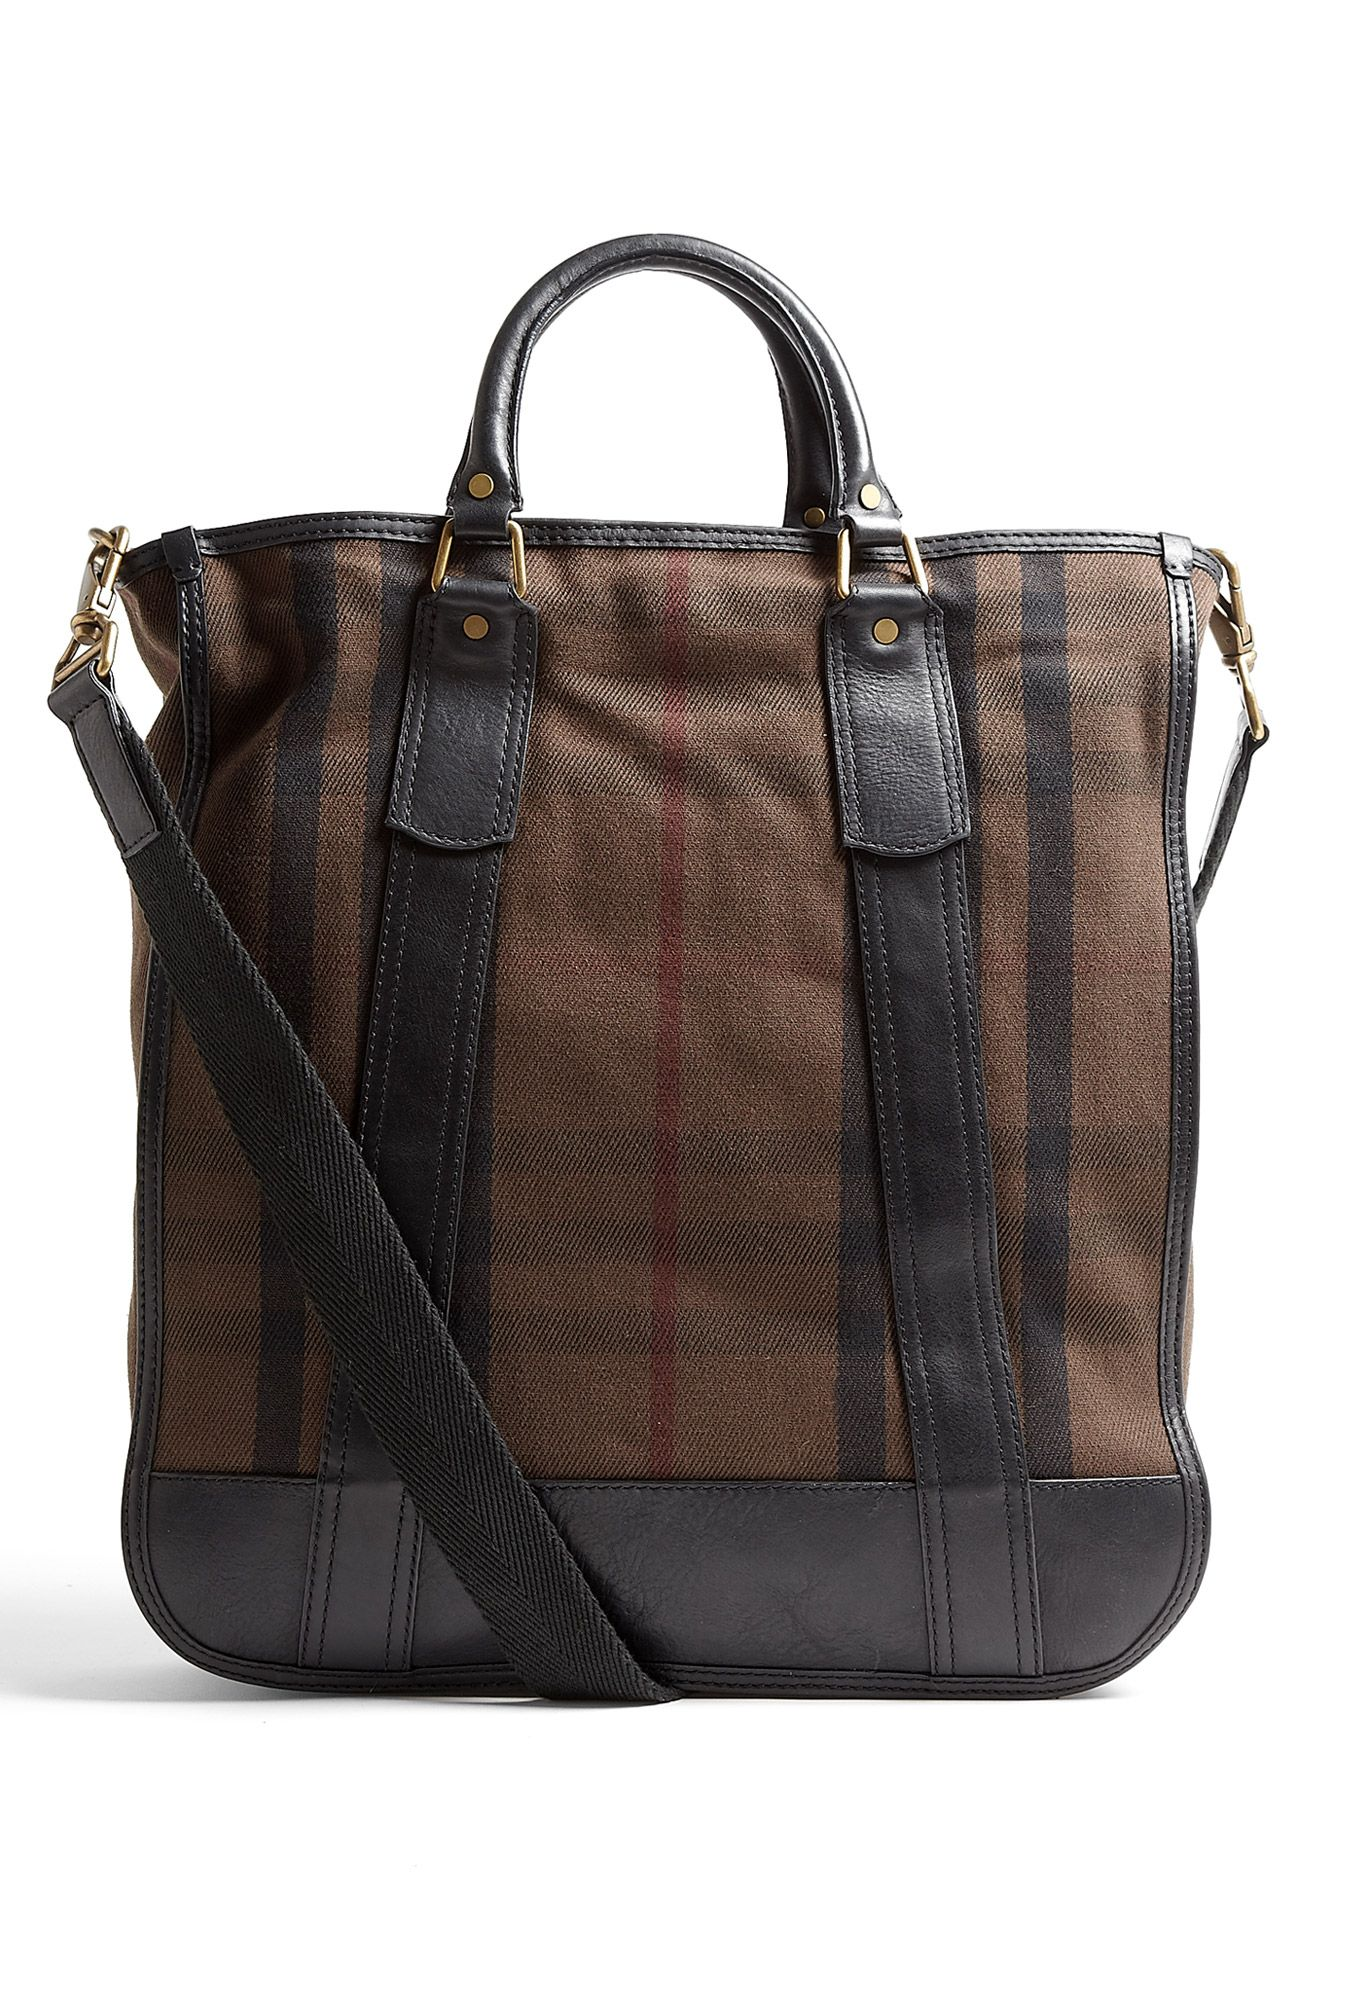 84999a7db755 Chocolate signature check canvas tote bag by Burberry Brit featuring black  leather trim